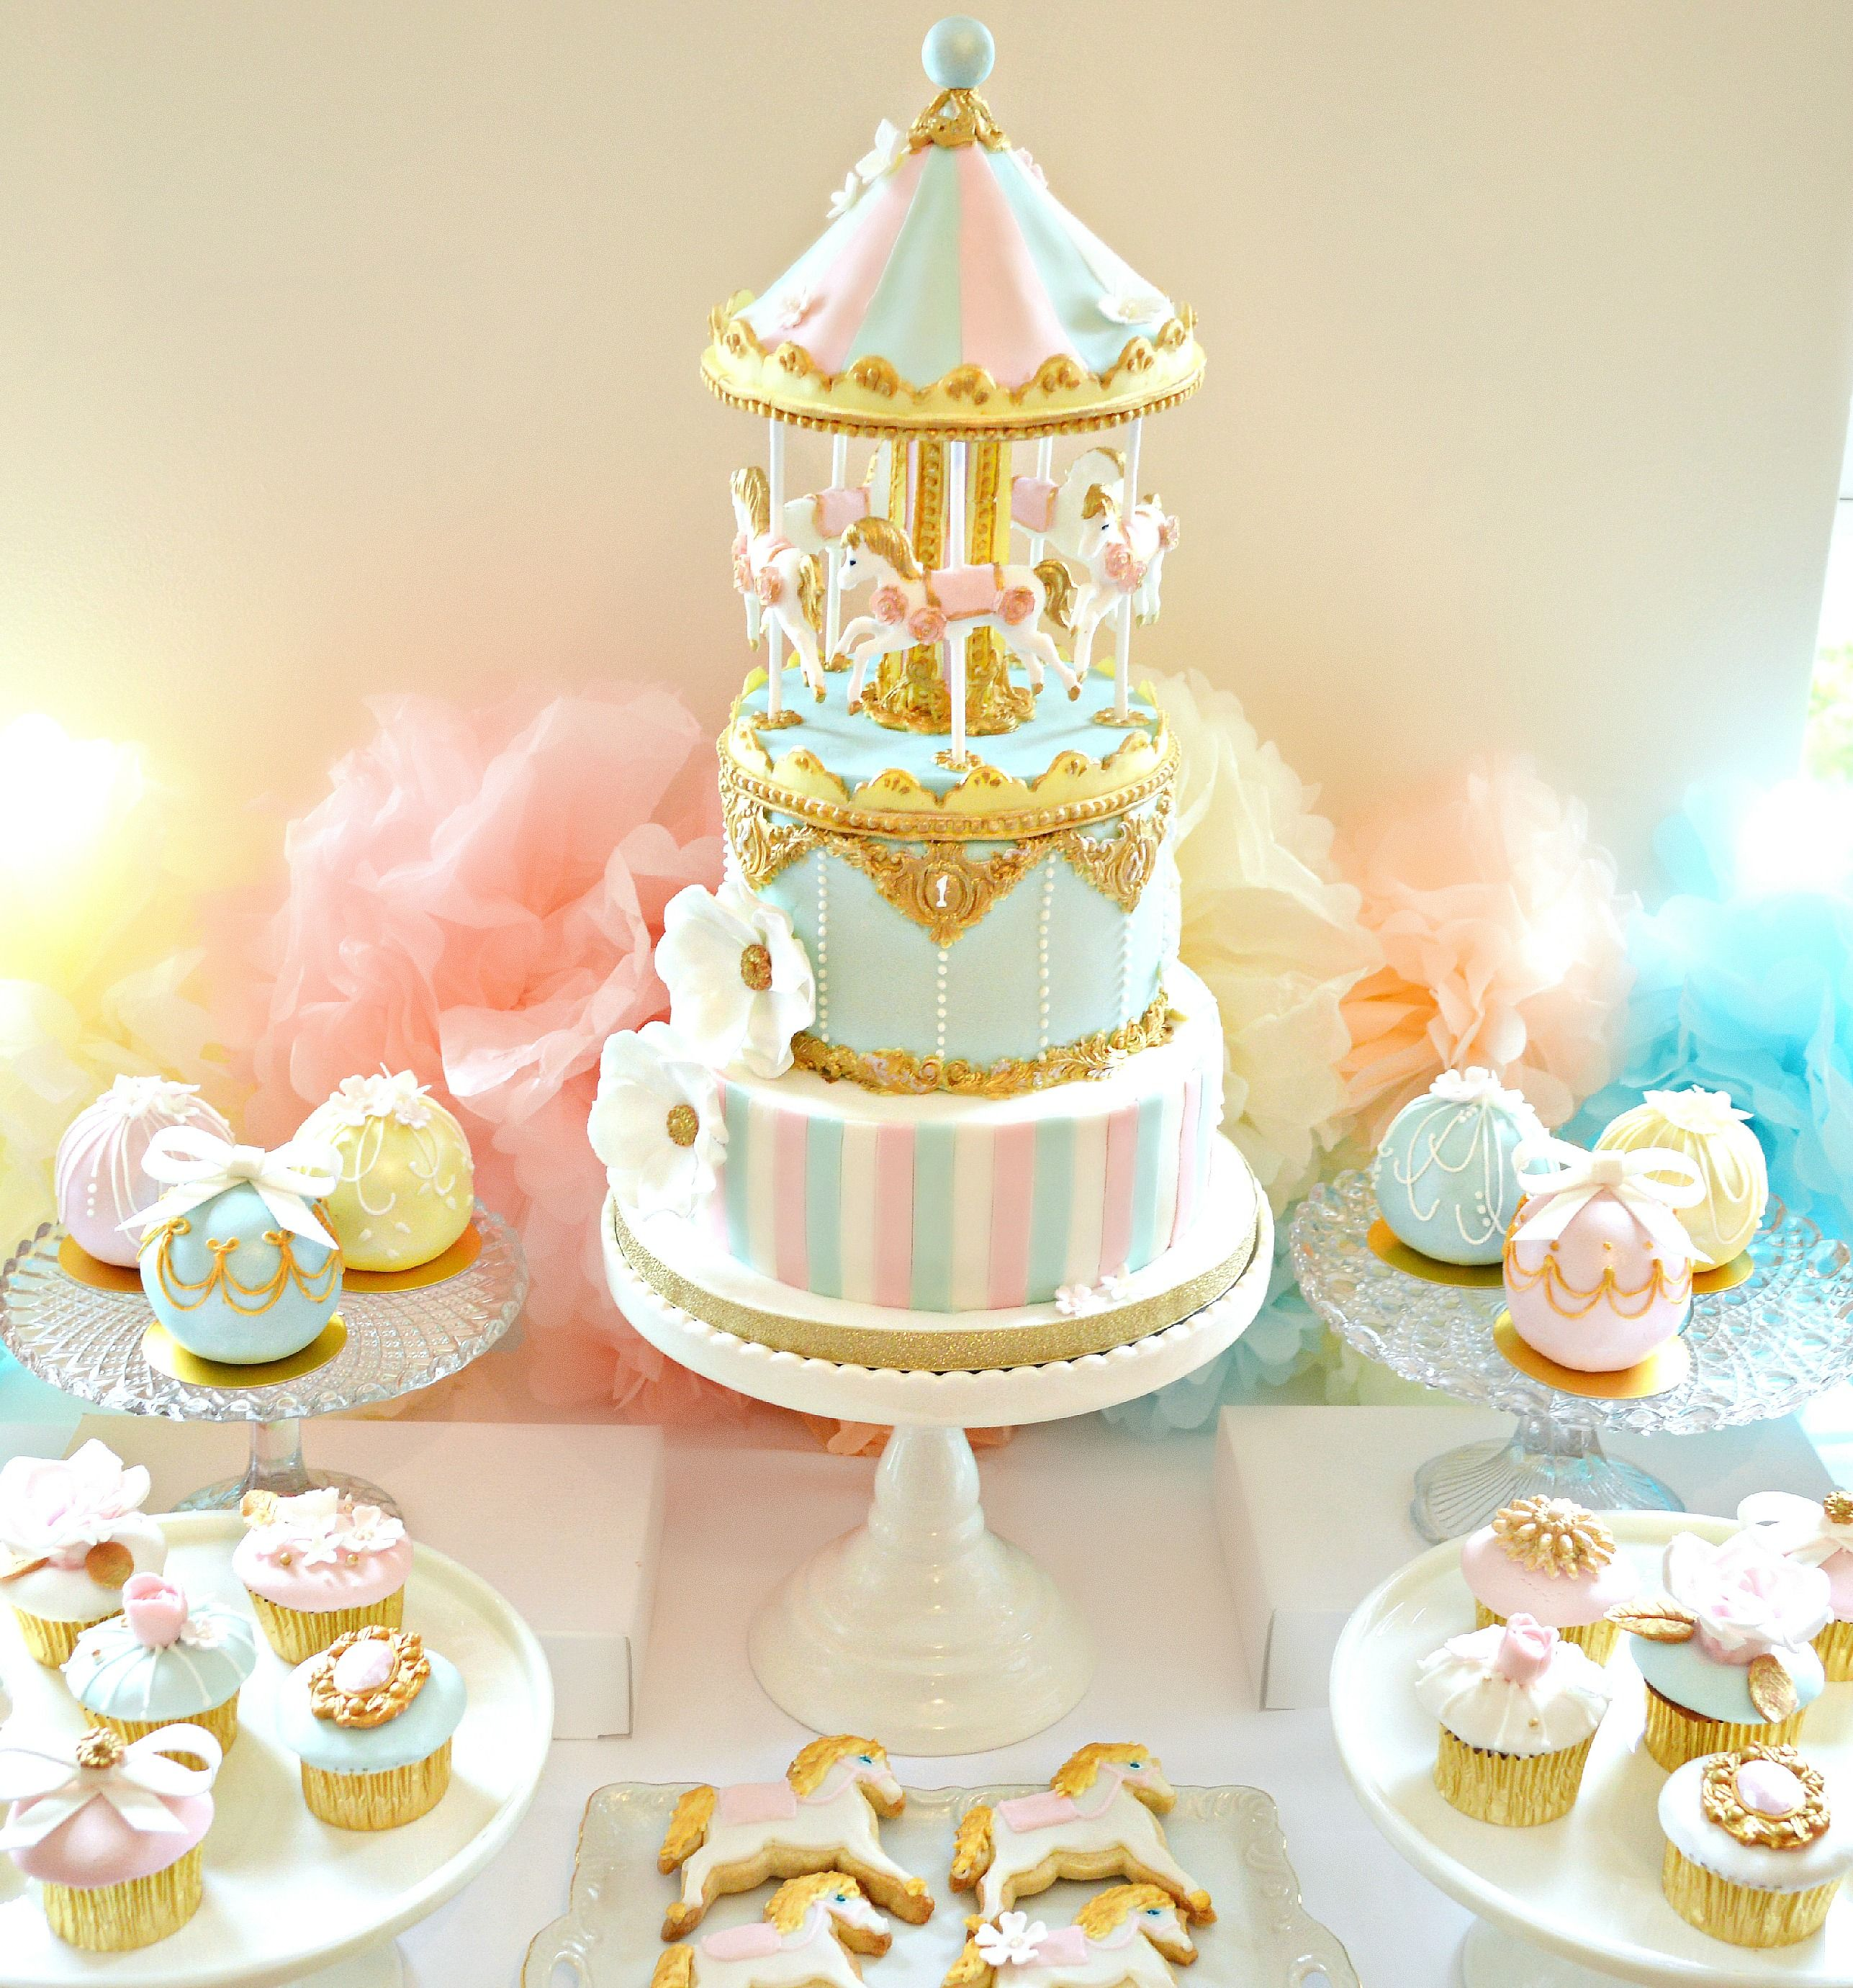 Pink, Blue And Gold Carousel Birthday Cake, Cupcakes And